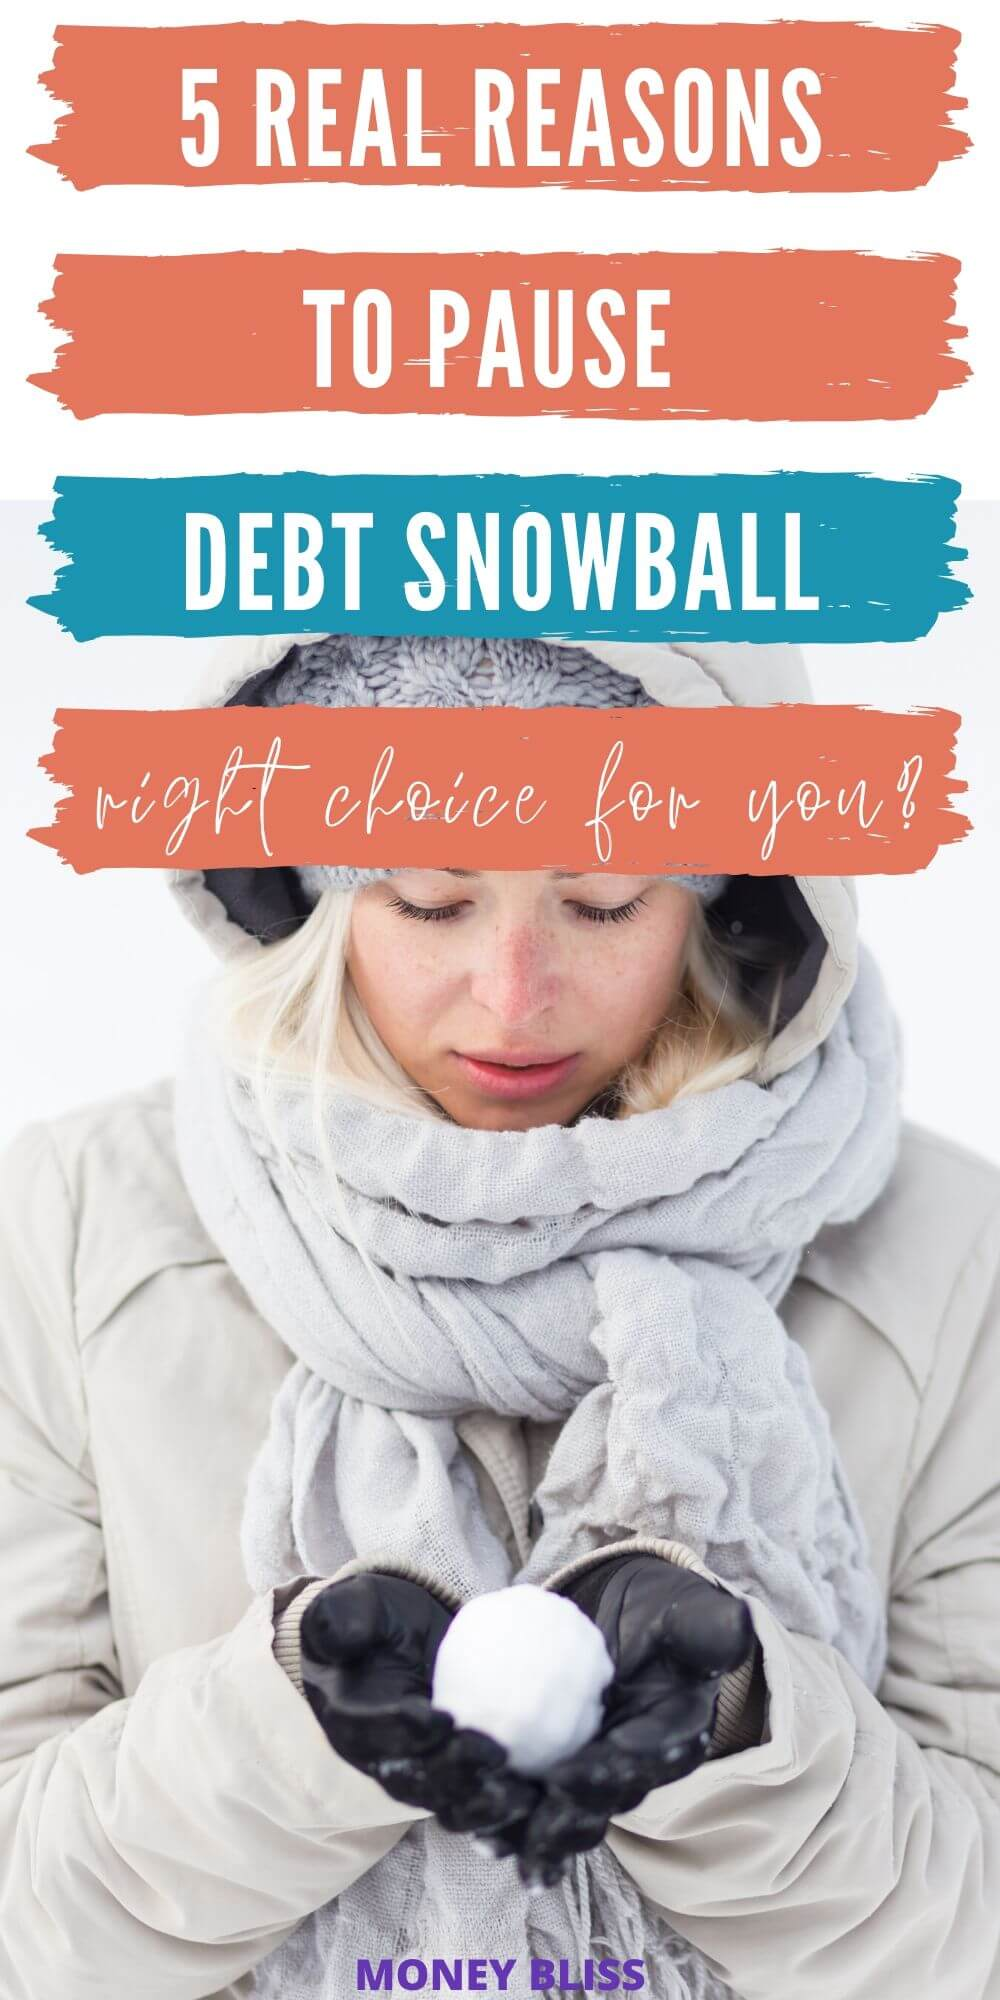 Debt snowball method is a great way to pay off debt quickly. However, is there a reason to pause or stop your debt snowball and postpone your debt free date? Read this post to make a wise personal finance decision. End goal is to get out of debt.